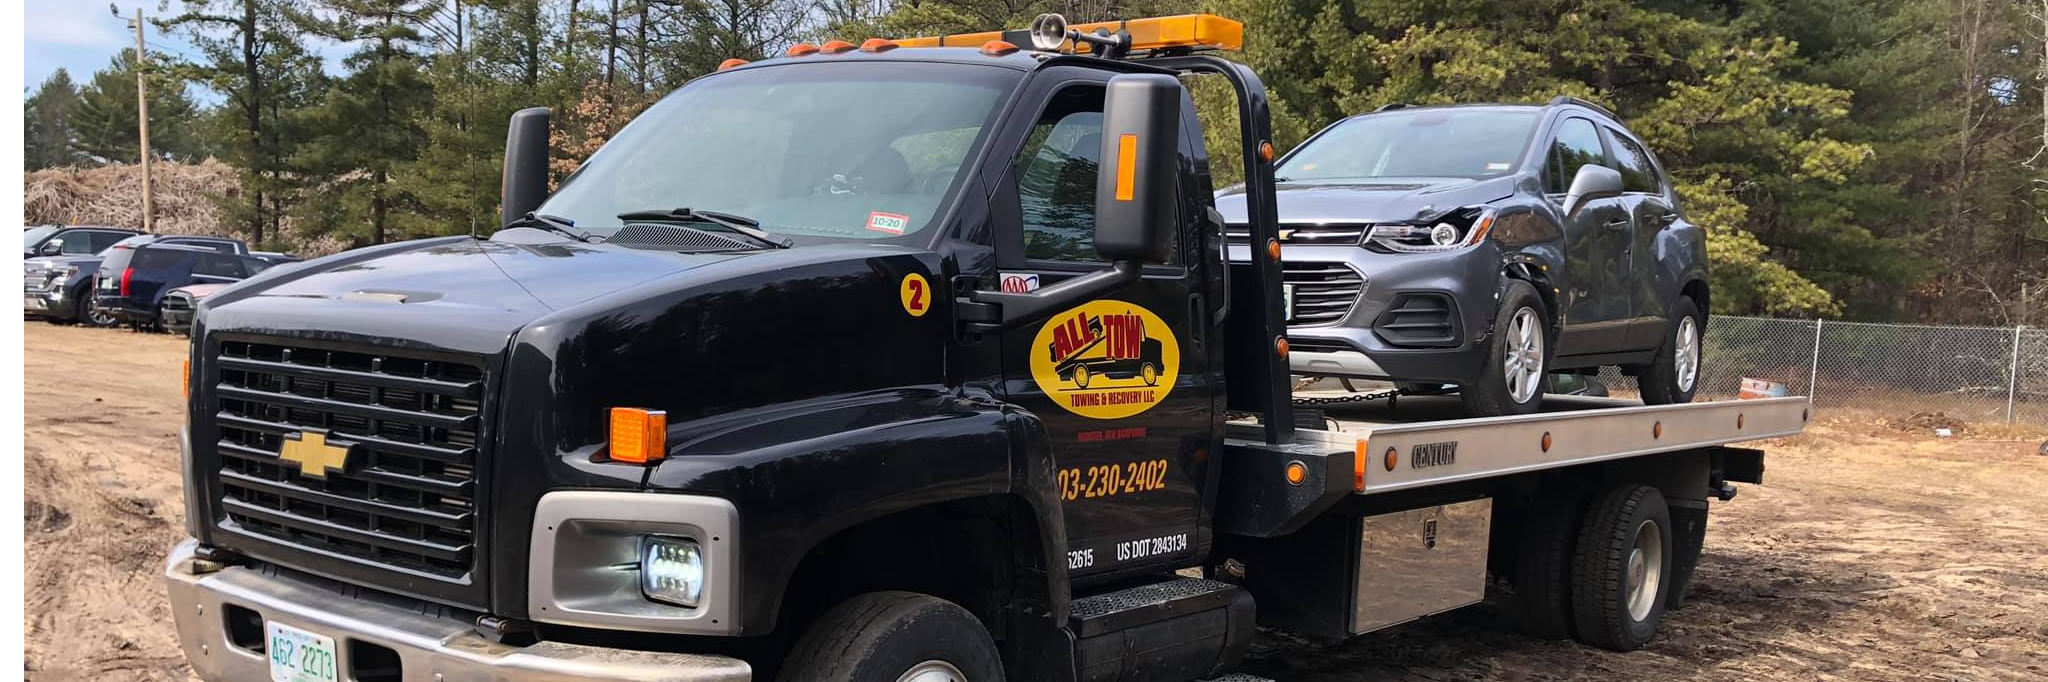 All Tow Towing & Recovery LLC Towing.com Profile Banner